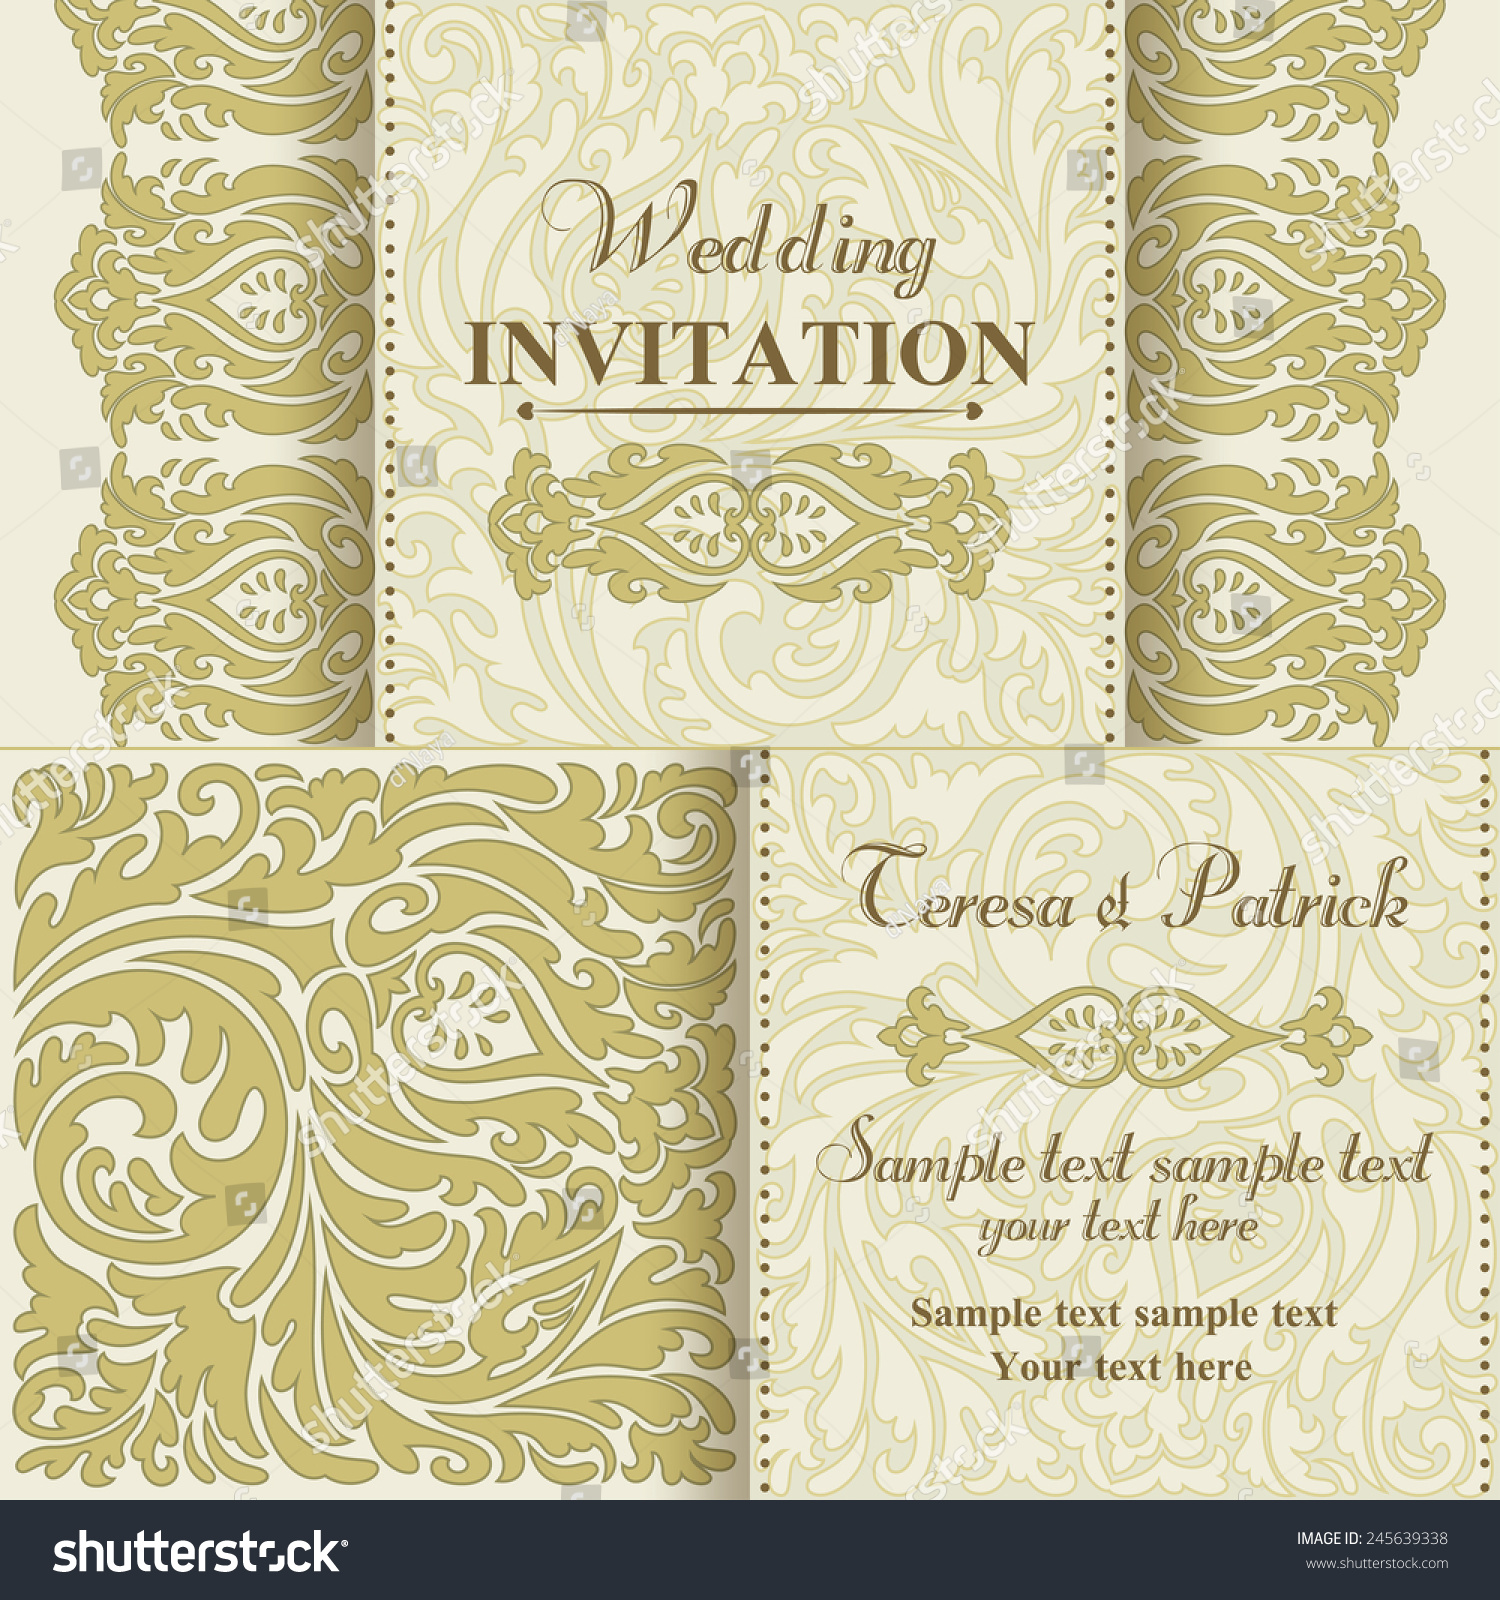 Baroque Wedding Invitation Card Oldfashioned Style Stock Vector ...